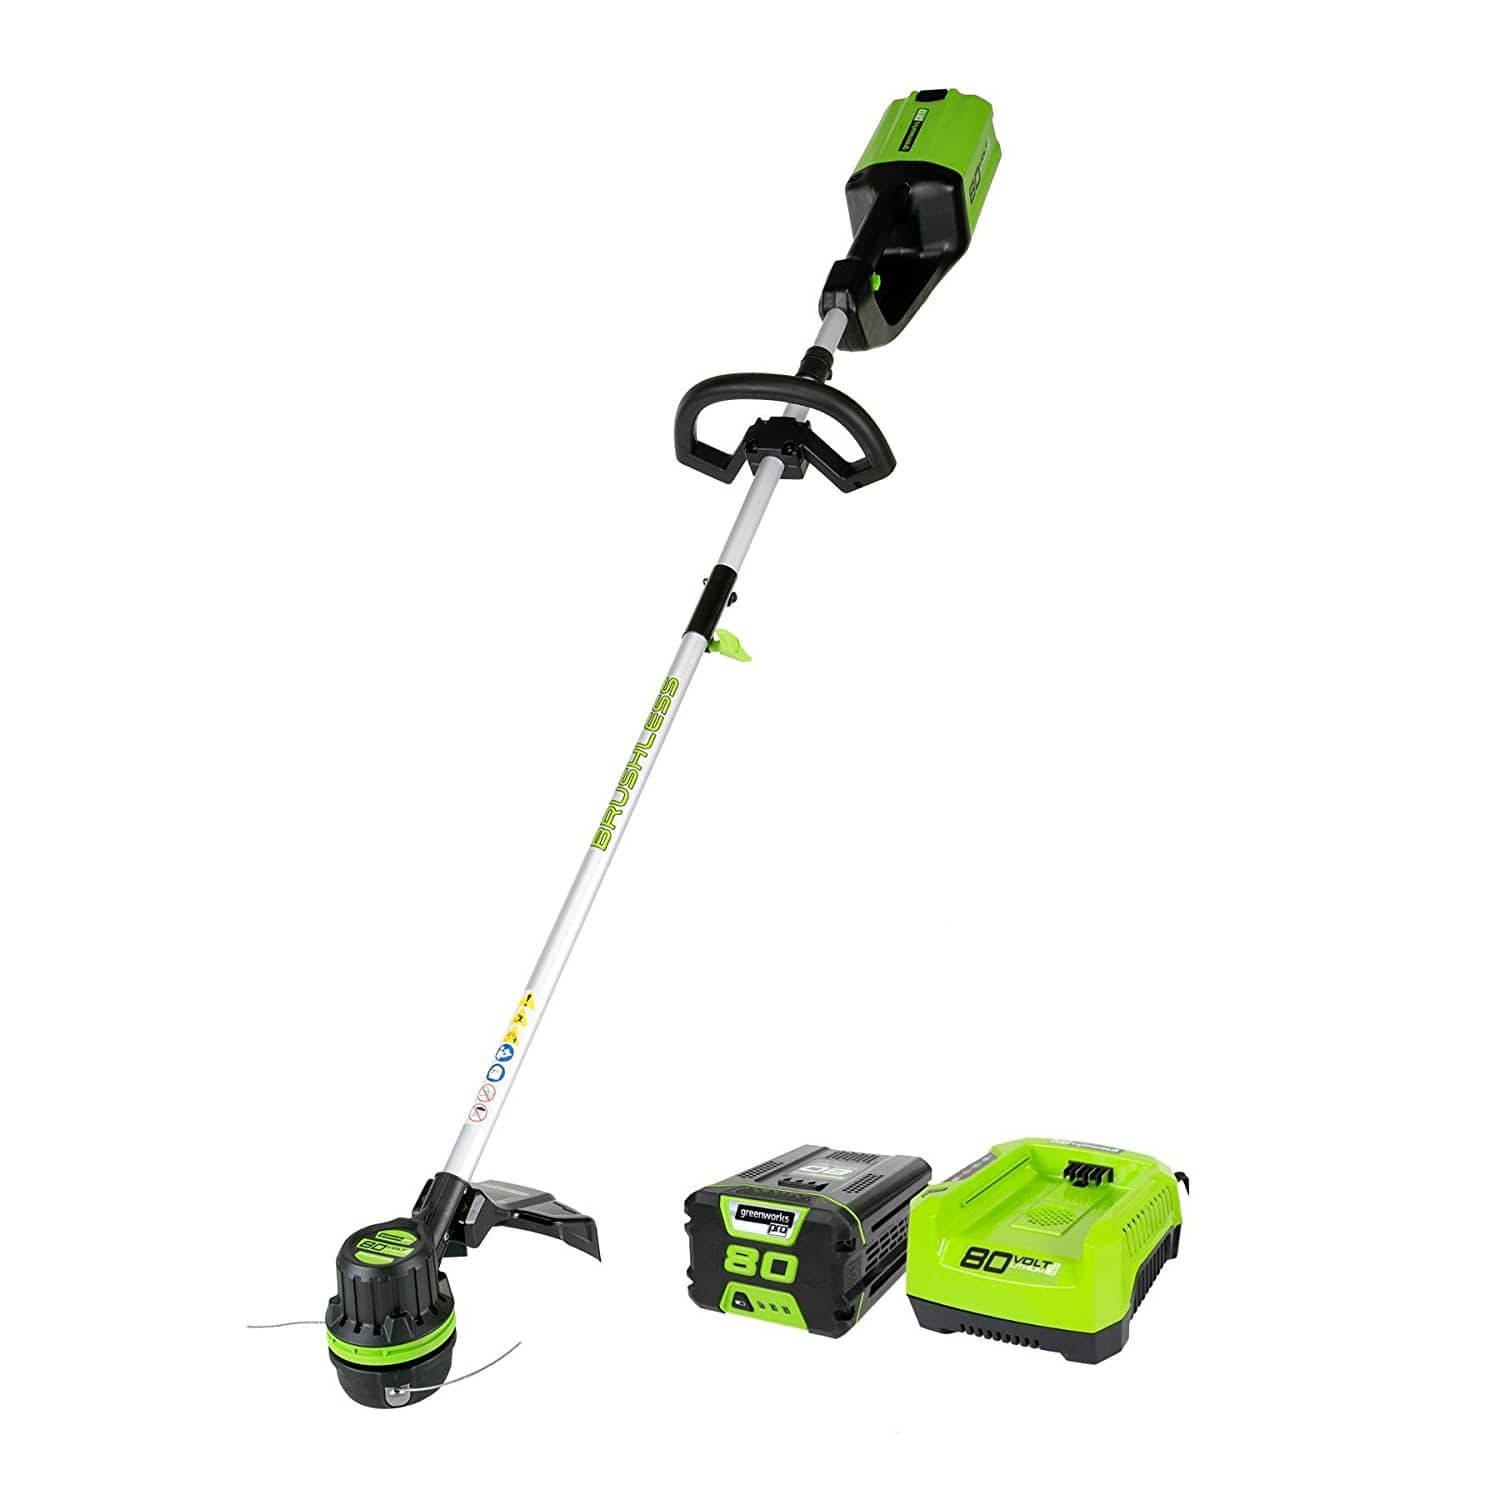 Greenworks PRO 16-Inch 80V Cordless String Trimmer w/2.0ah Battery and charger $167.16 Amazon Prime